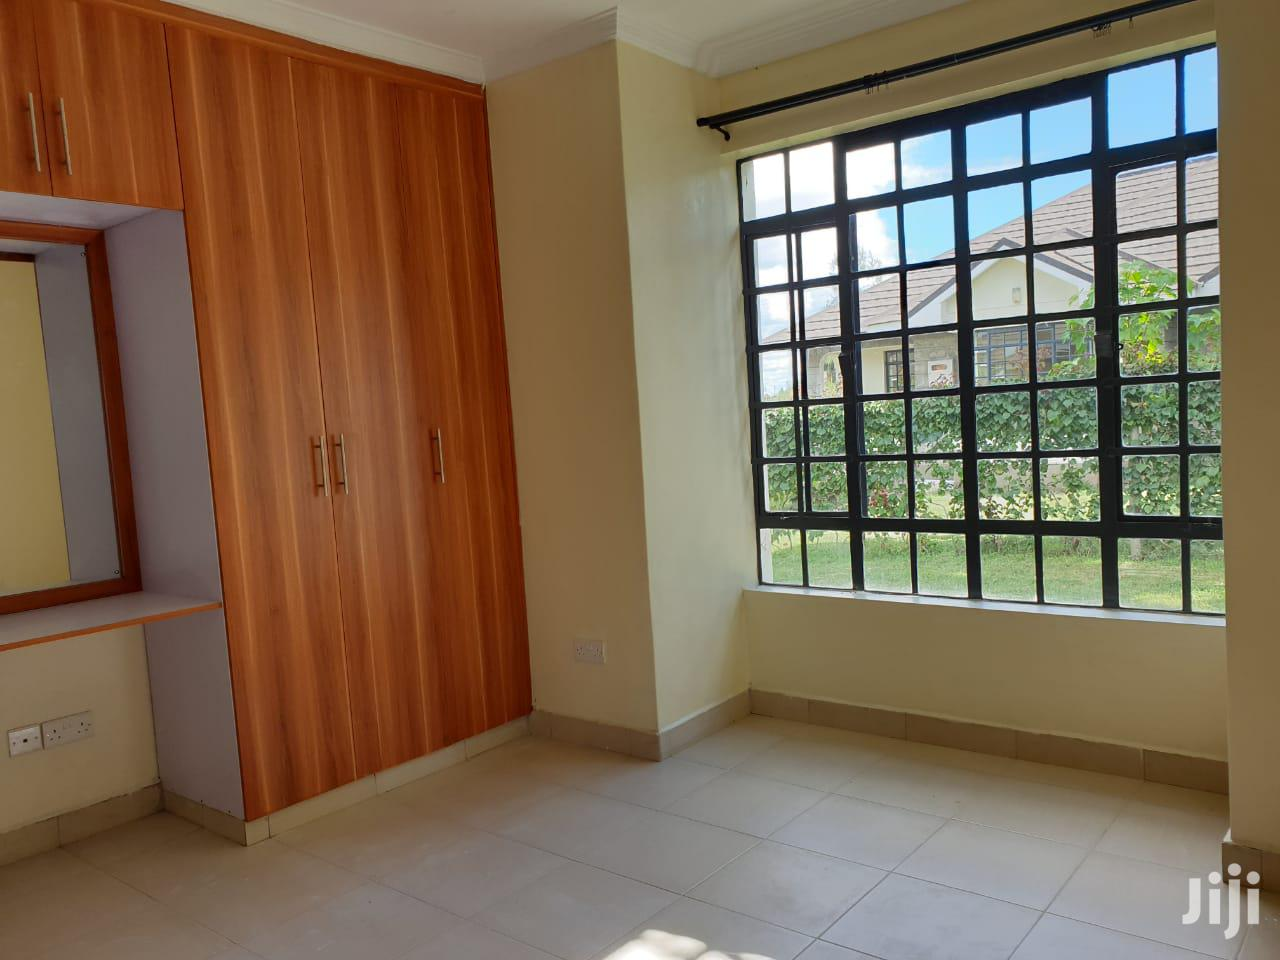 Three Bedroom's Bungalow For Sale | Houses & Apartments For Sale for sale in Kitengela, Kajiado, Kenya